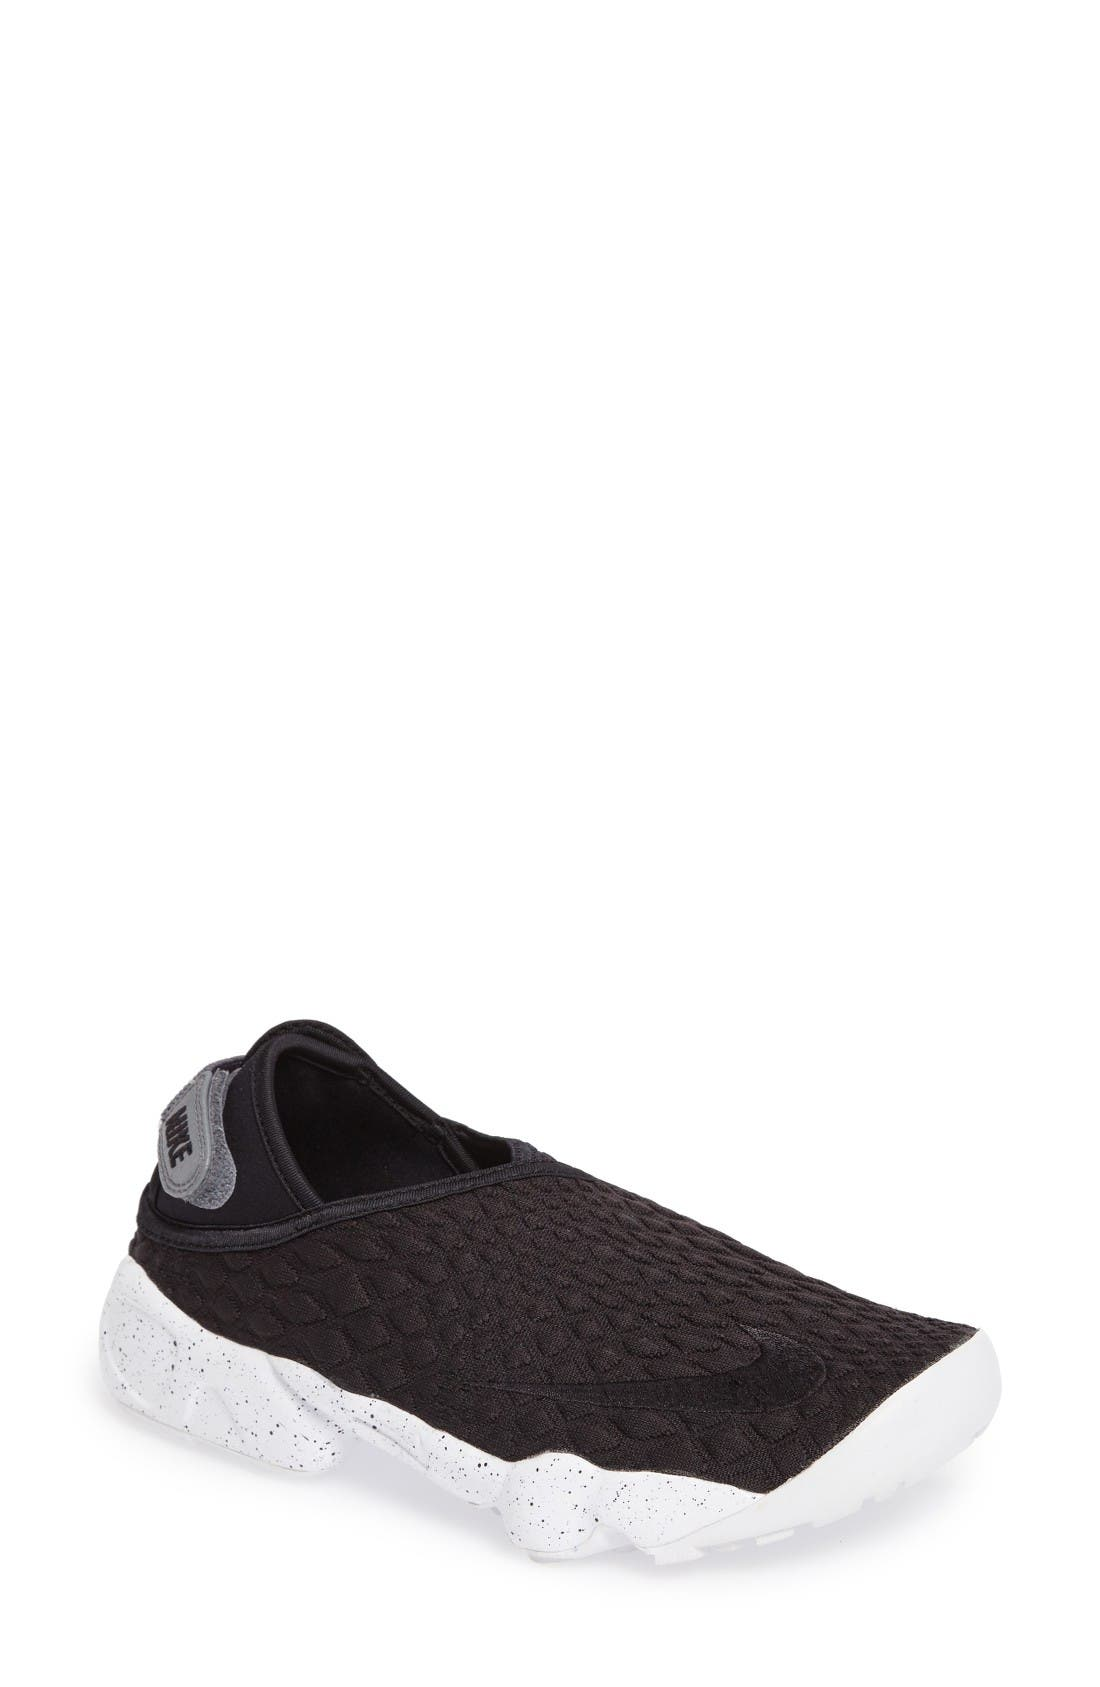 NIKE Rift Wrap Slip-On Sneaker